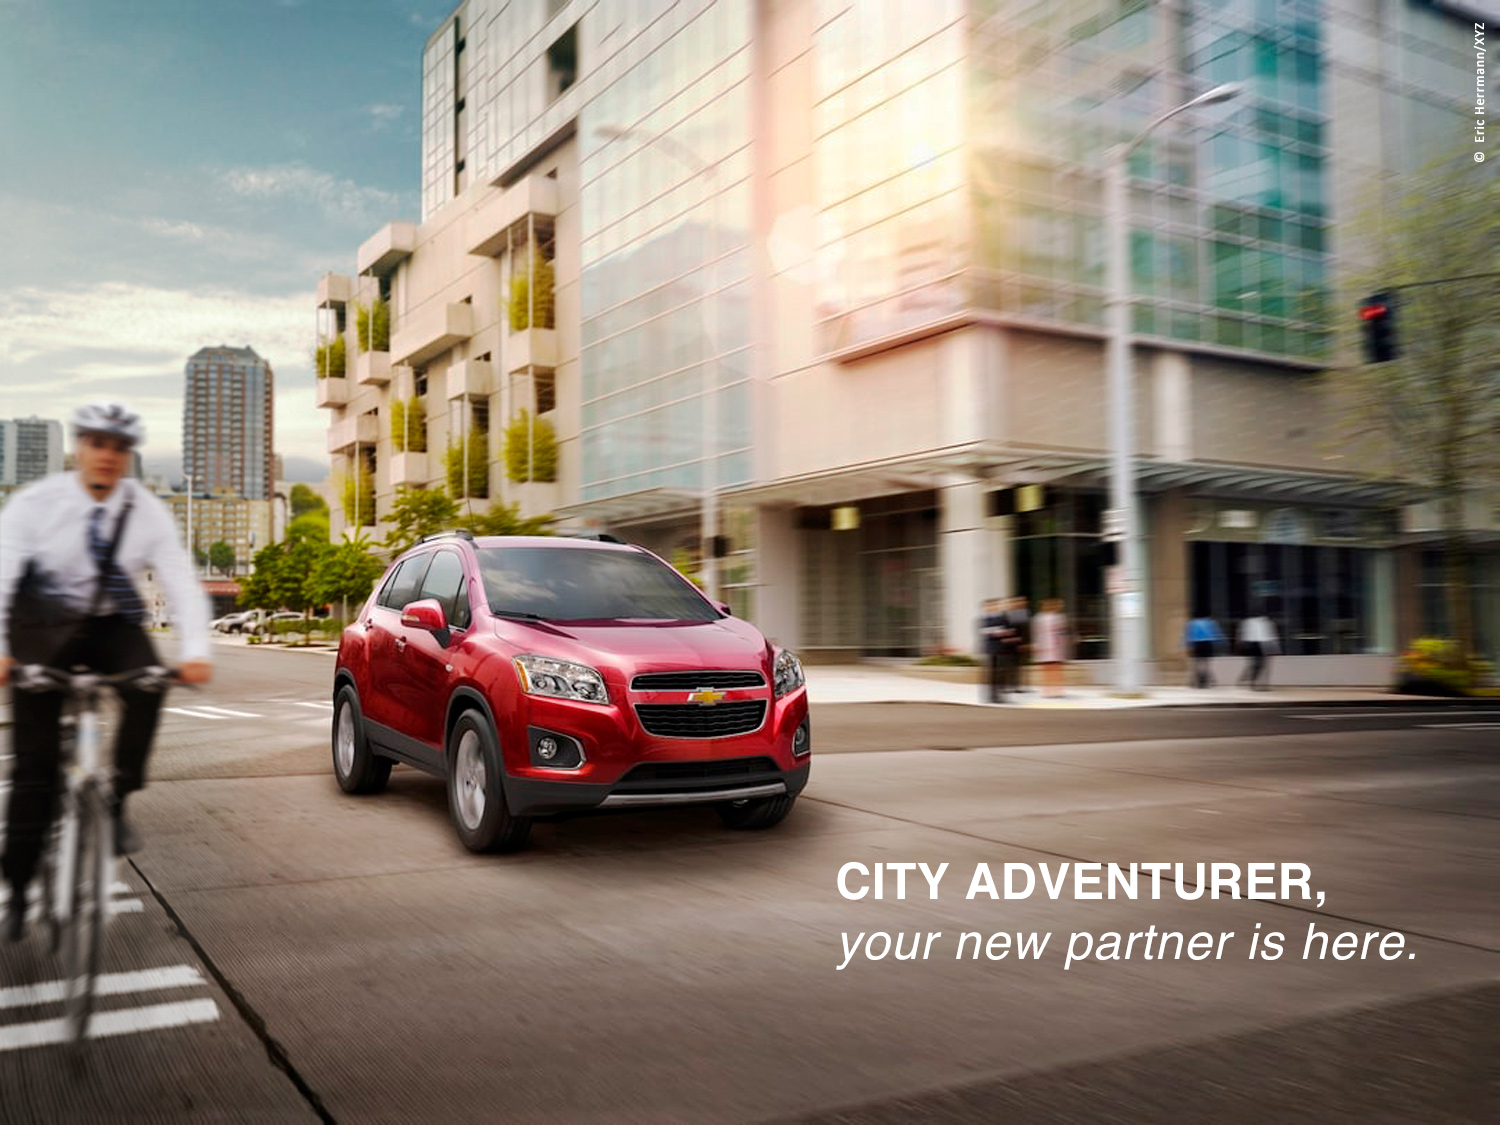 photo of modern apartment building on a city street with a man commuting on a bike next to Chevy Trax car